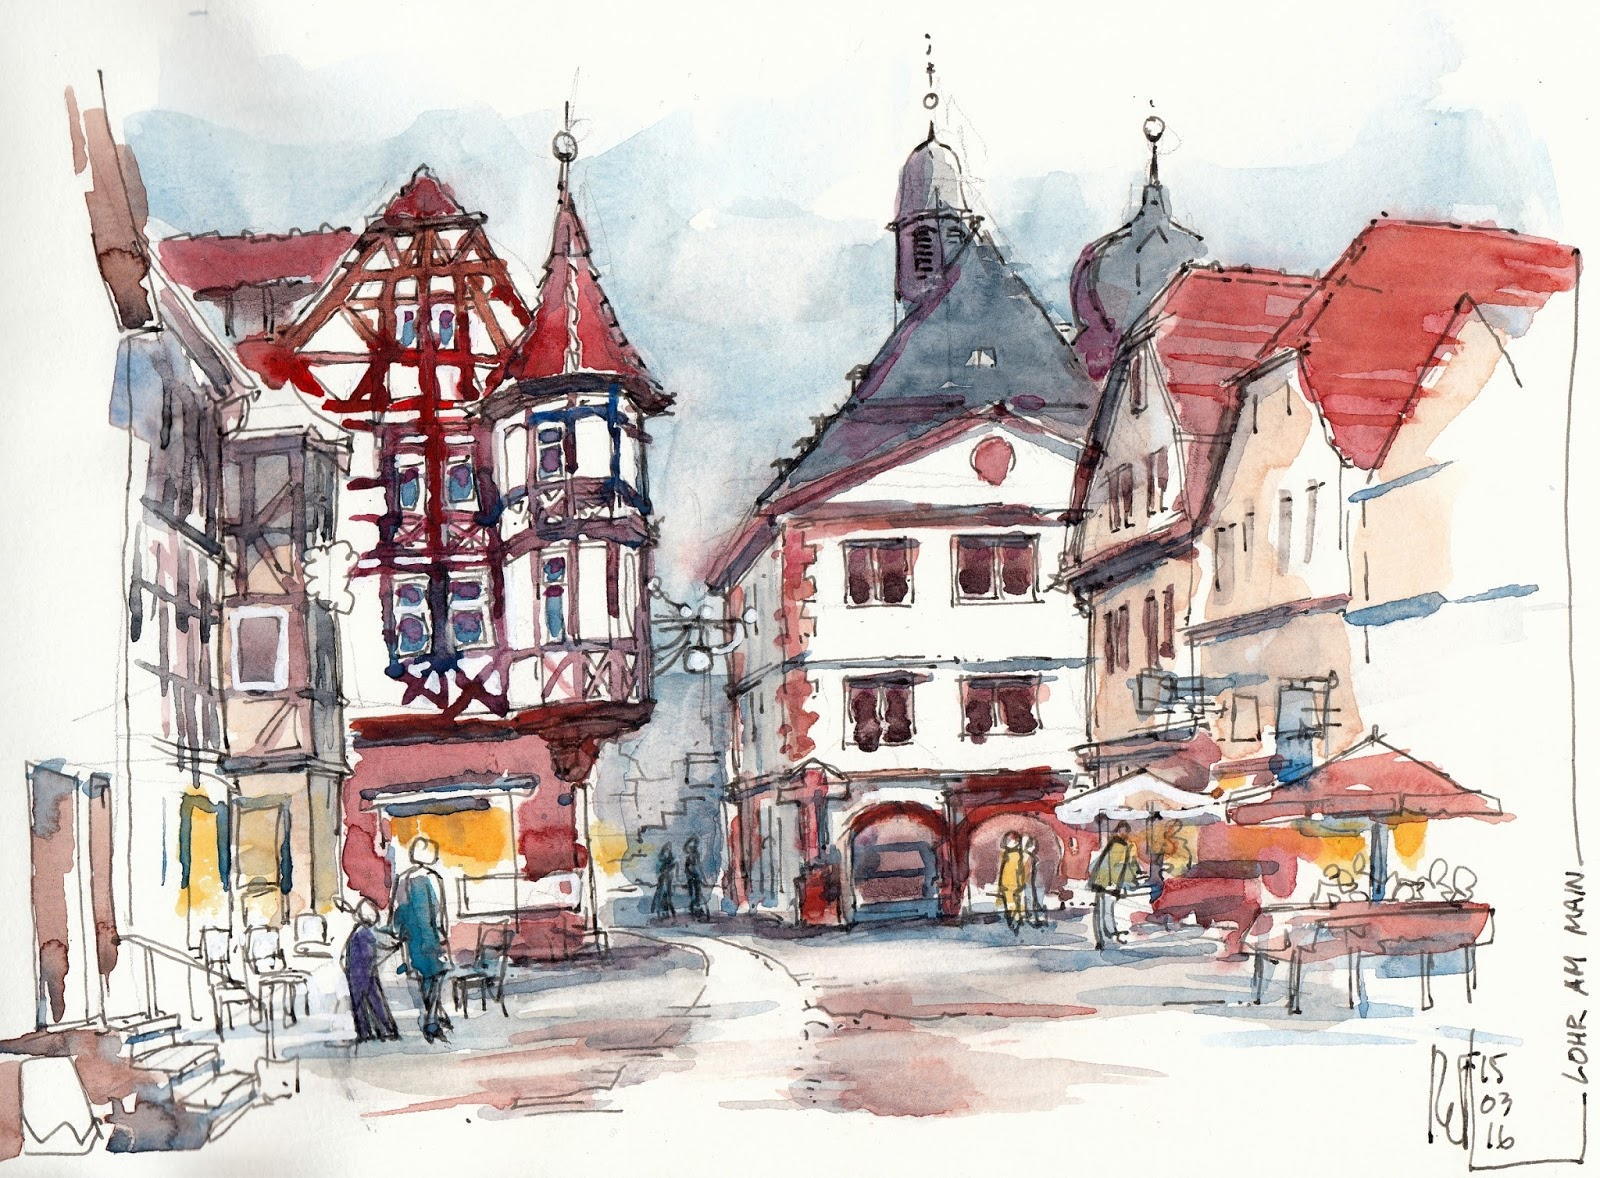 Rene fijten sketches lohr am main for Heimbach lohr am main